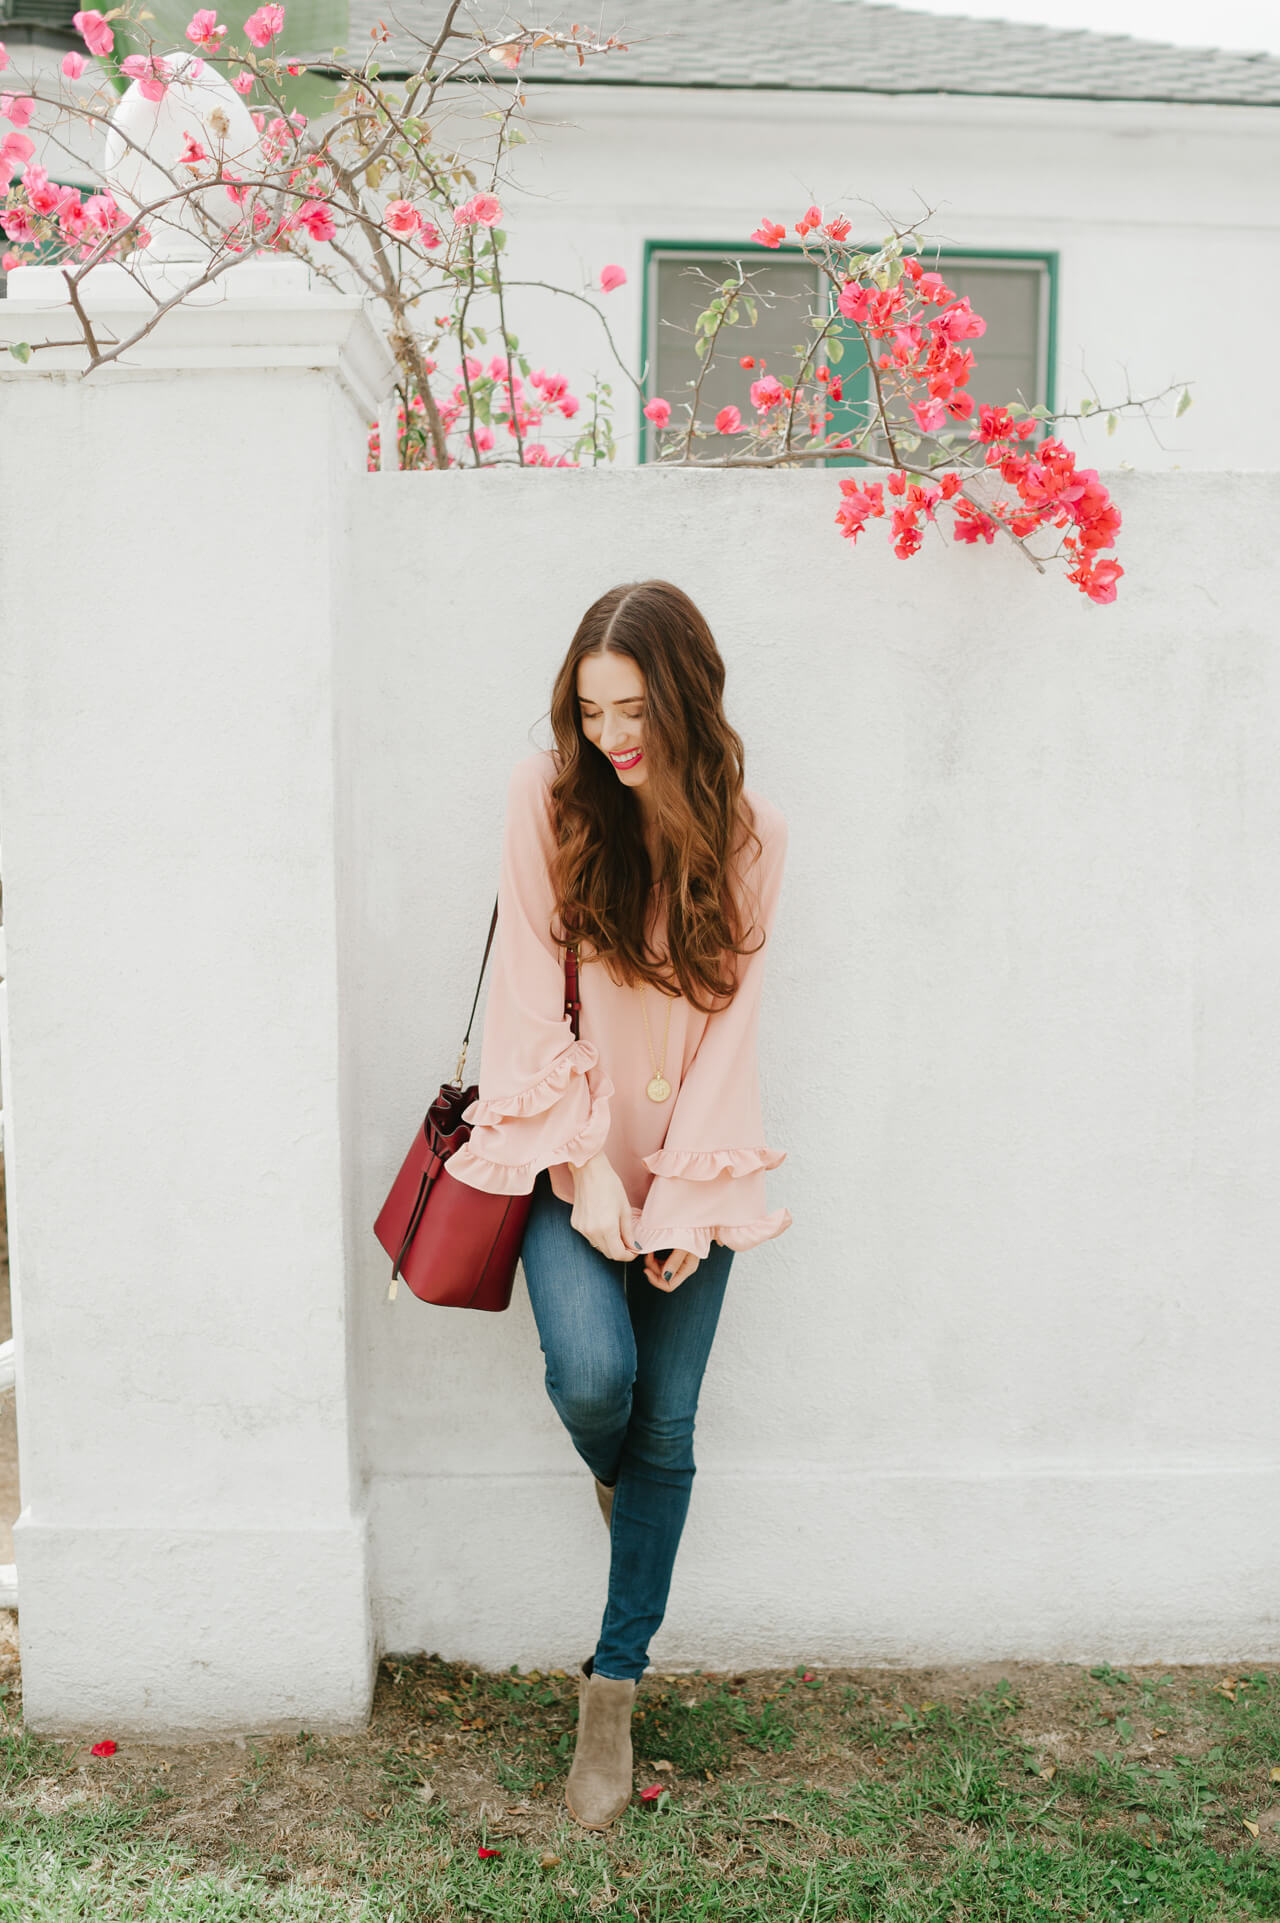 feminine outfit inspiration for fall - a go-to fall outfit combination